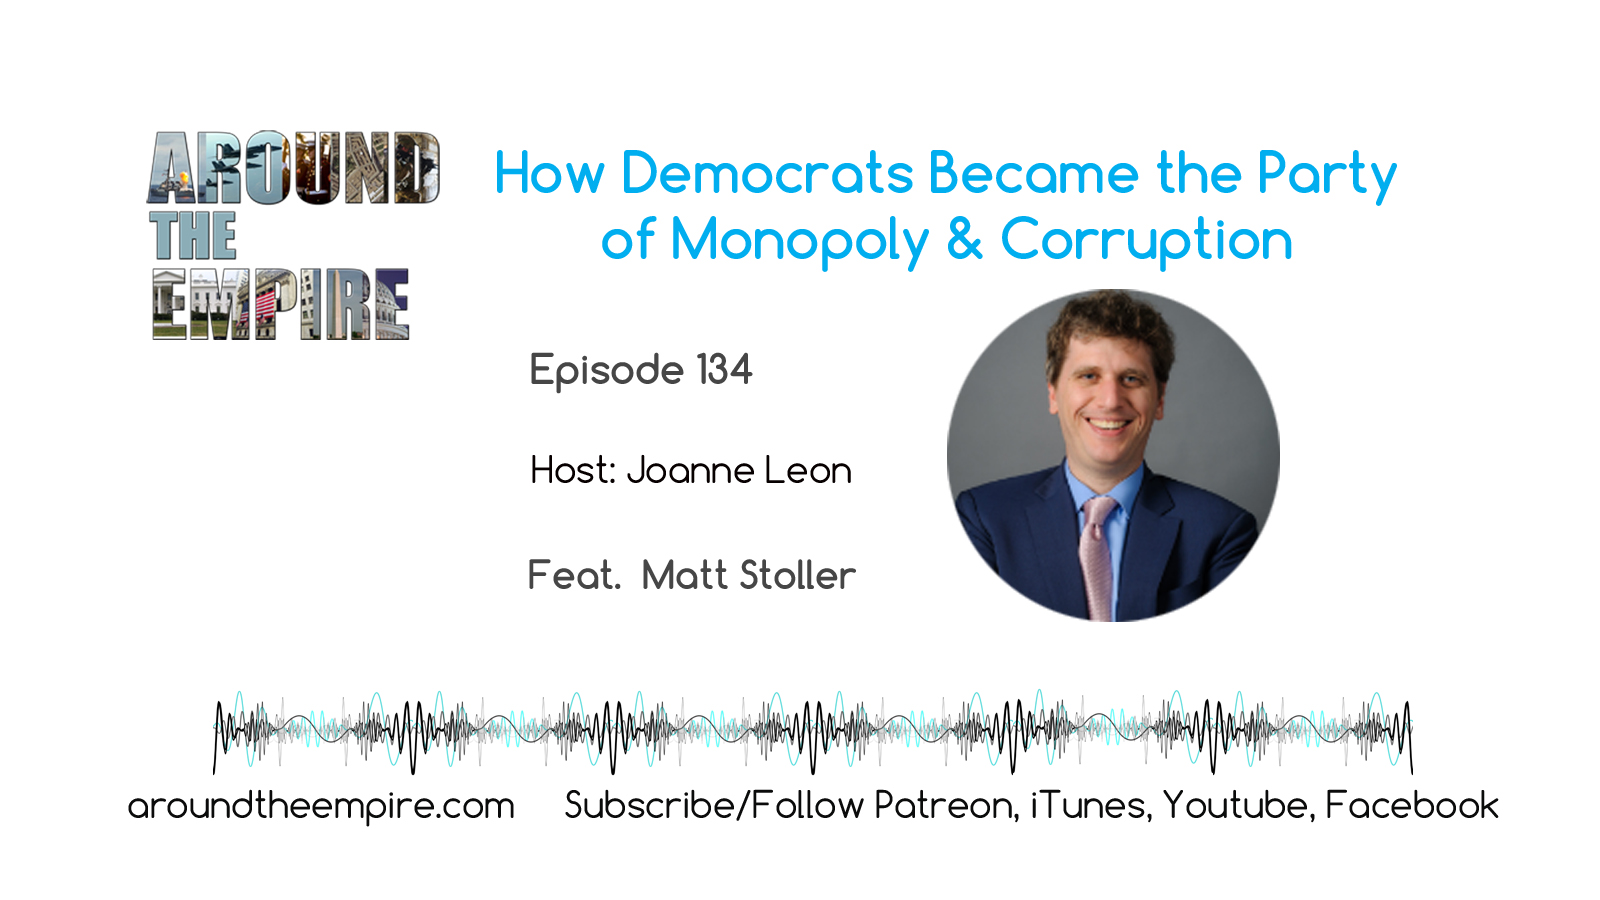 Ep 134 How Democrats Became Party of Monopoly & Corruption feat Matt Stoller